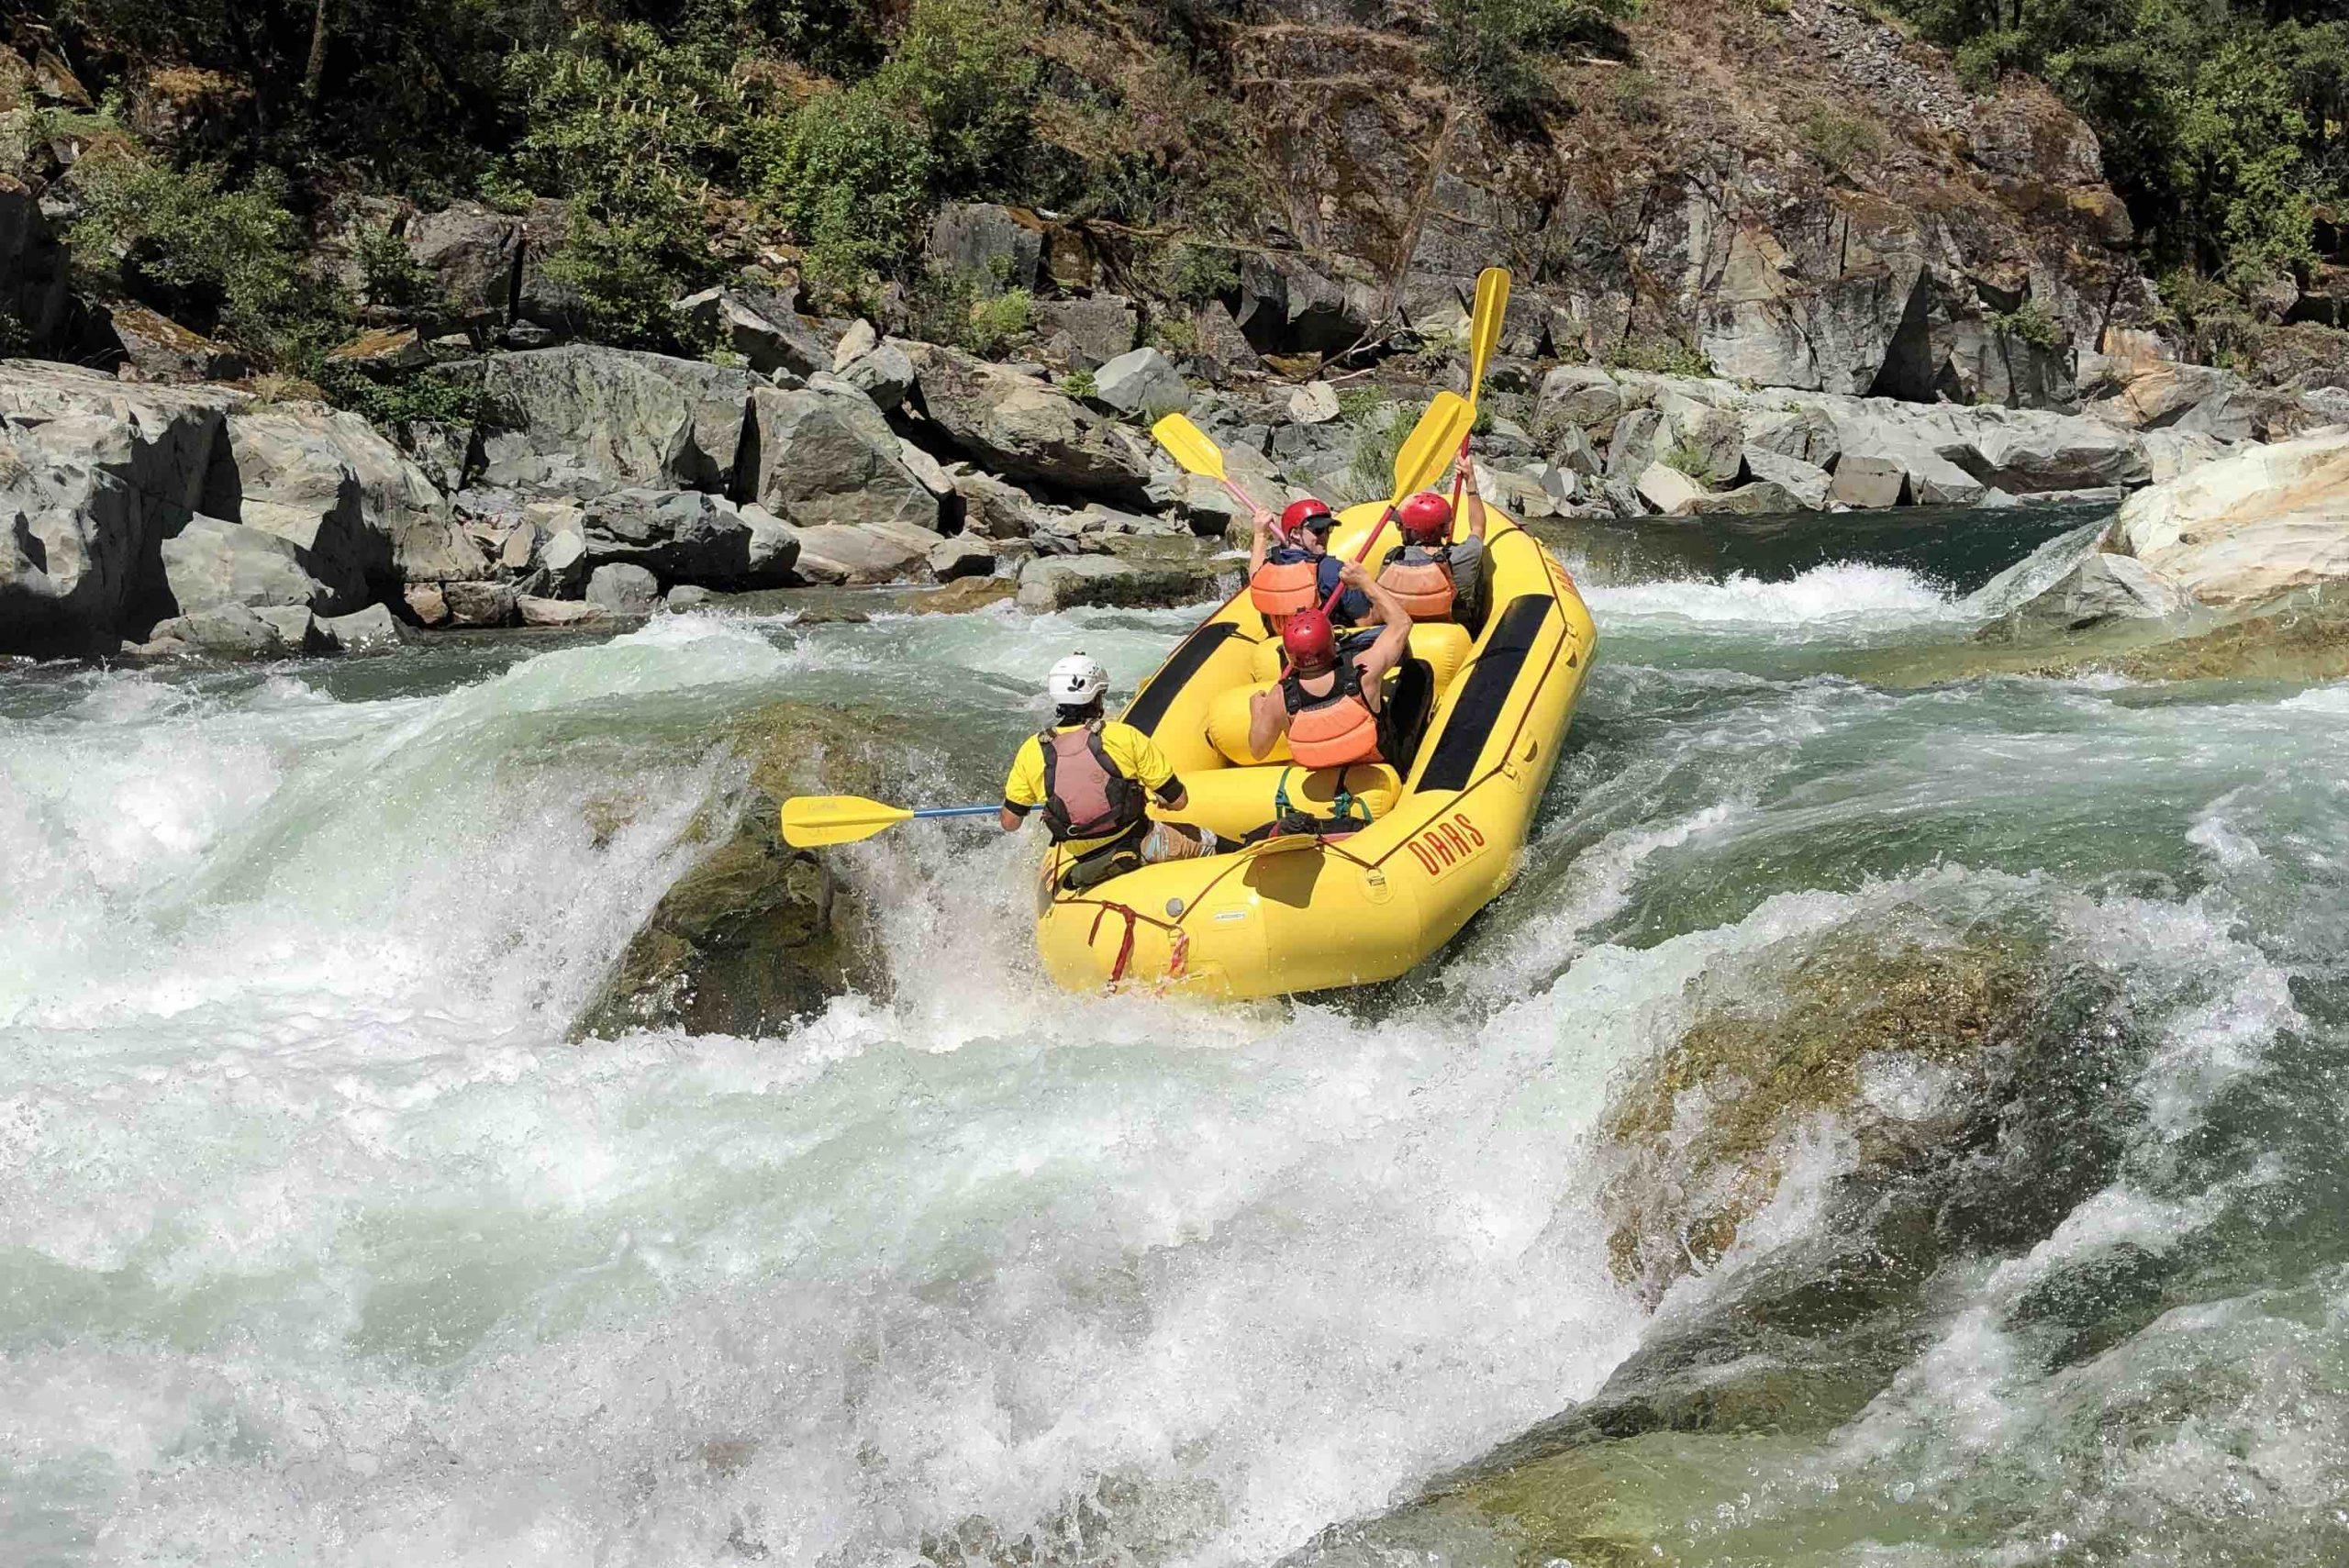 Staircase Rapid: North Fork of the American River